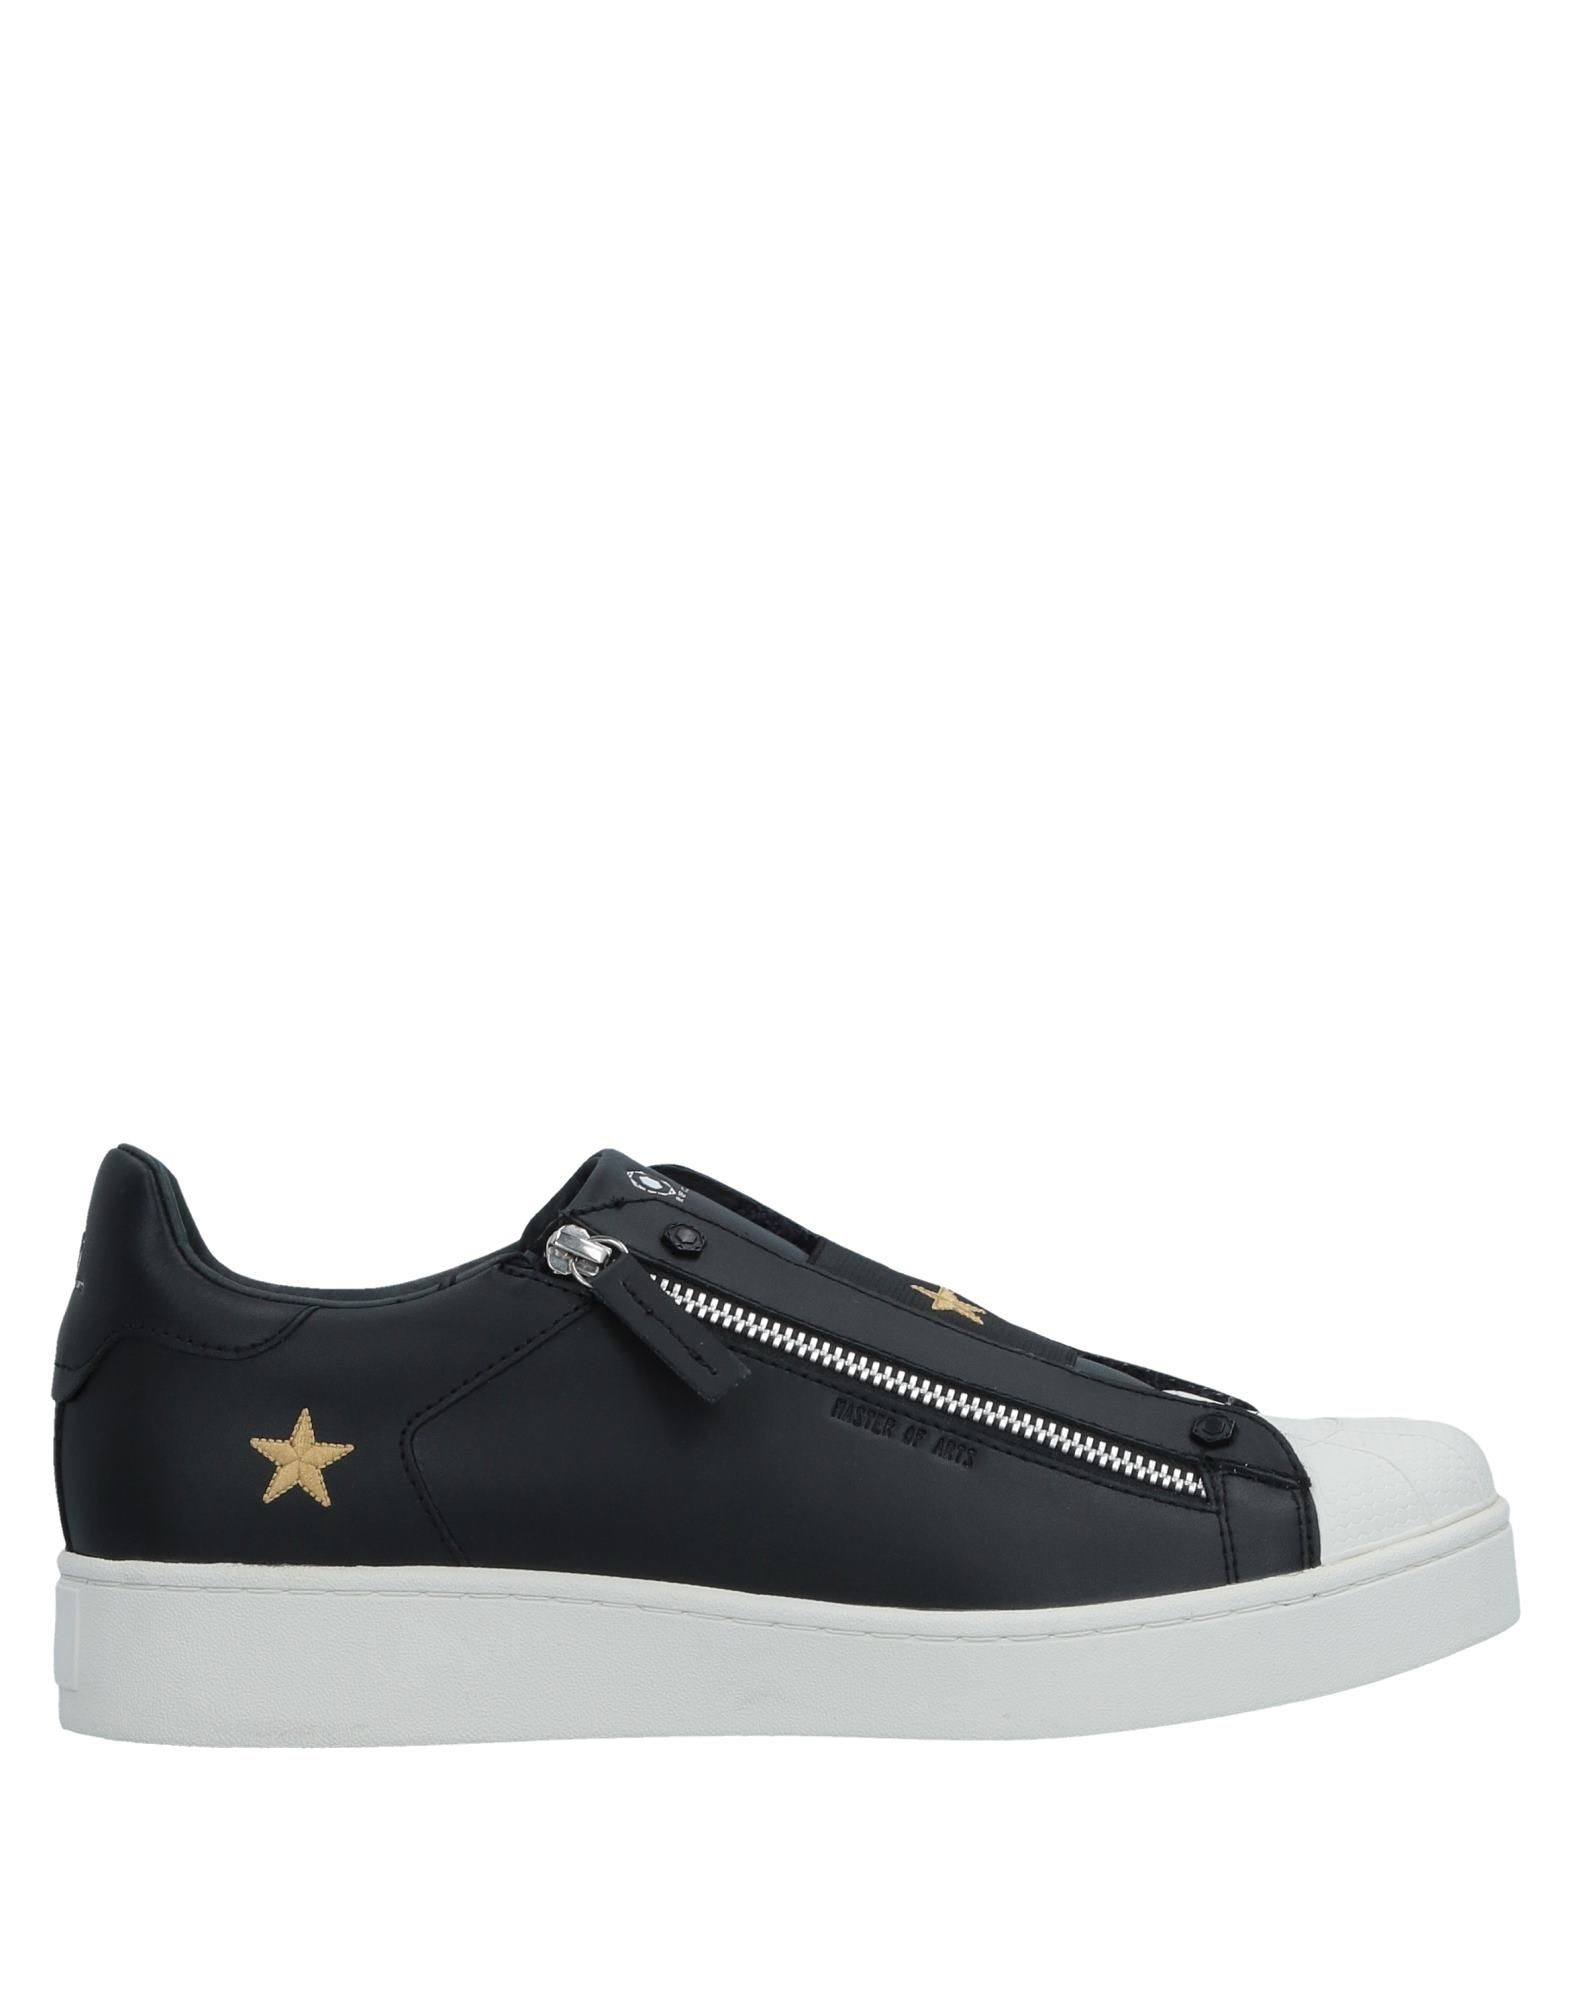 Sneakers Moa Master Of Arts Homme - Sneakers Moa Master Of Arts  Noir Remise de marque